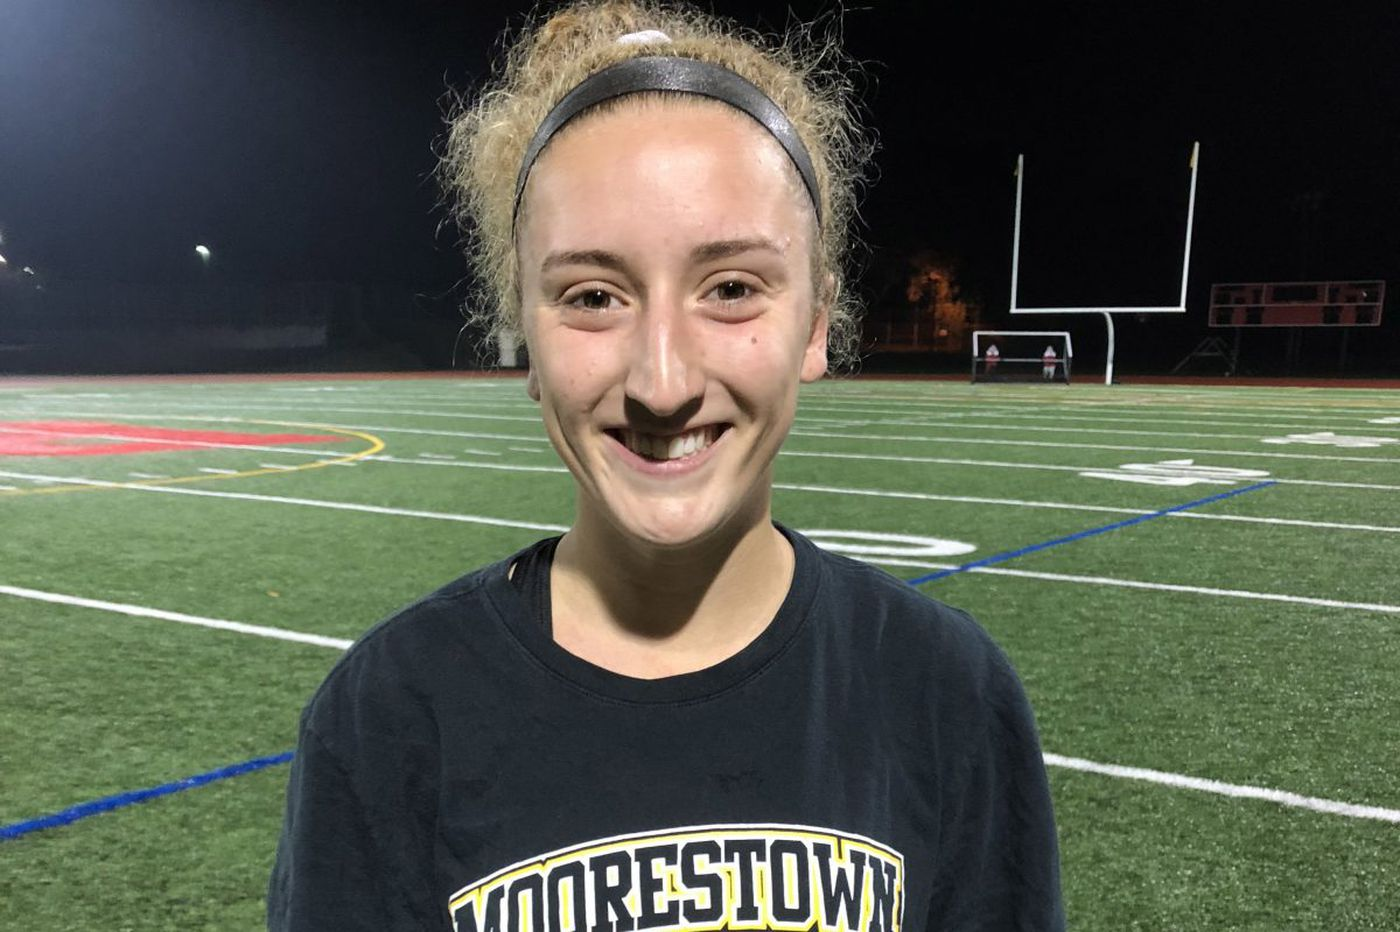 Field hockey: Moorestown beats Haddonfield in T of C opener